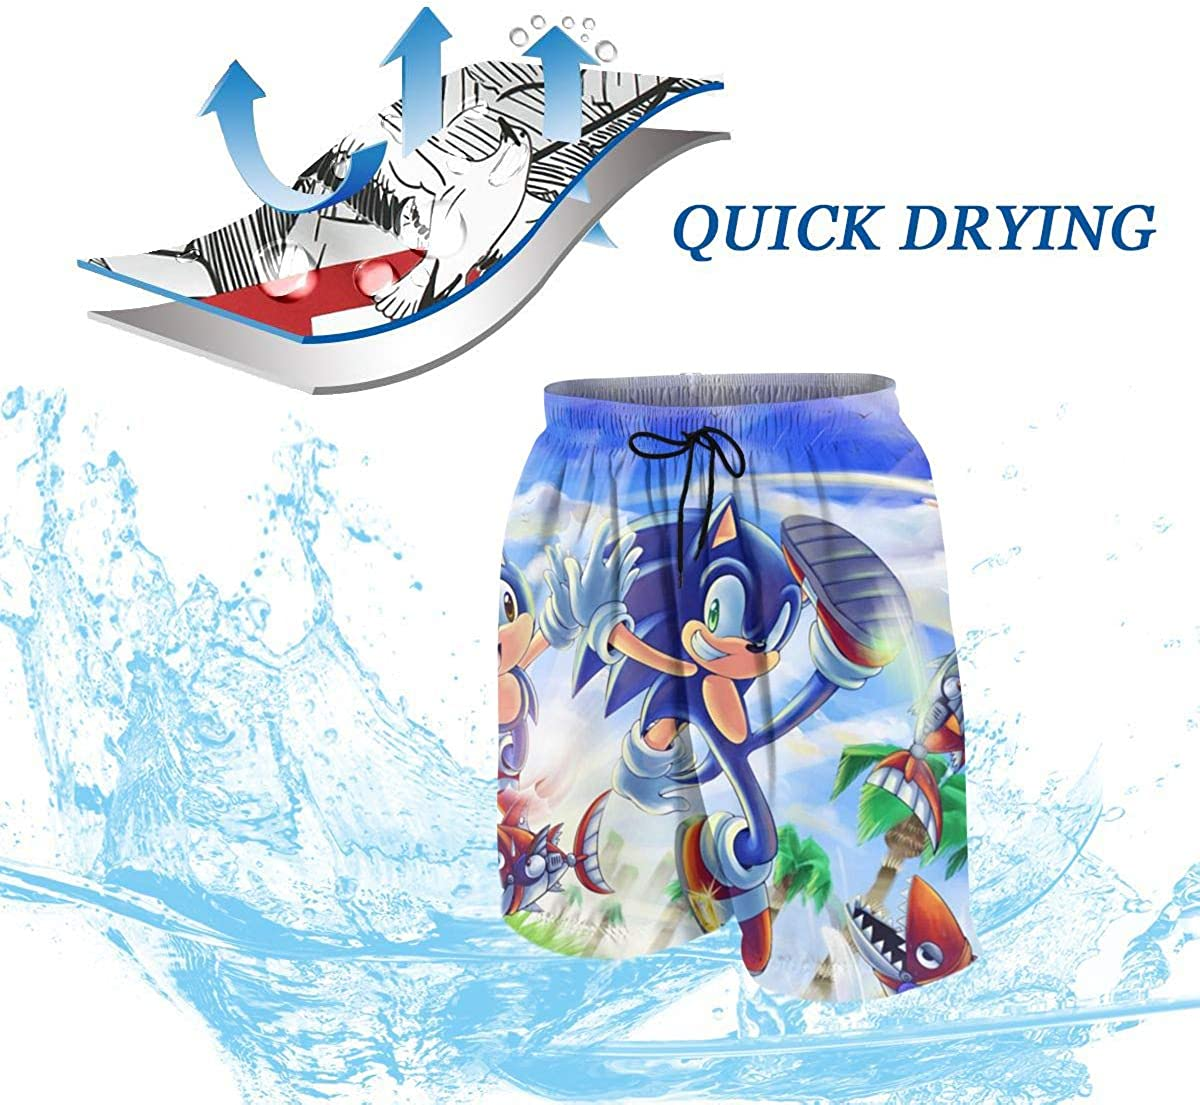 Muindancer Hedgehog Anime Youth Boys 3D Print Shorts Summer Beach Shorts Casual Pants Quick Dry Swim Trunk